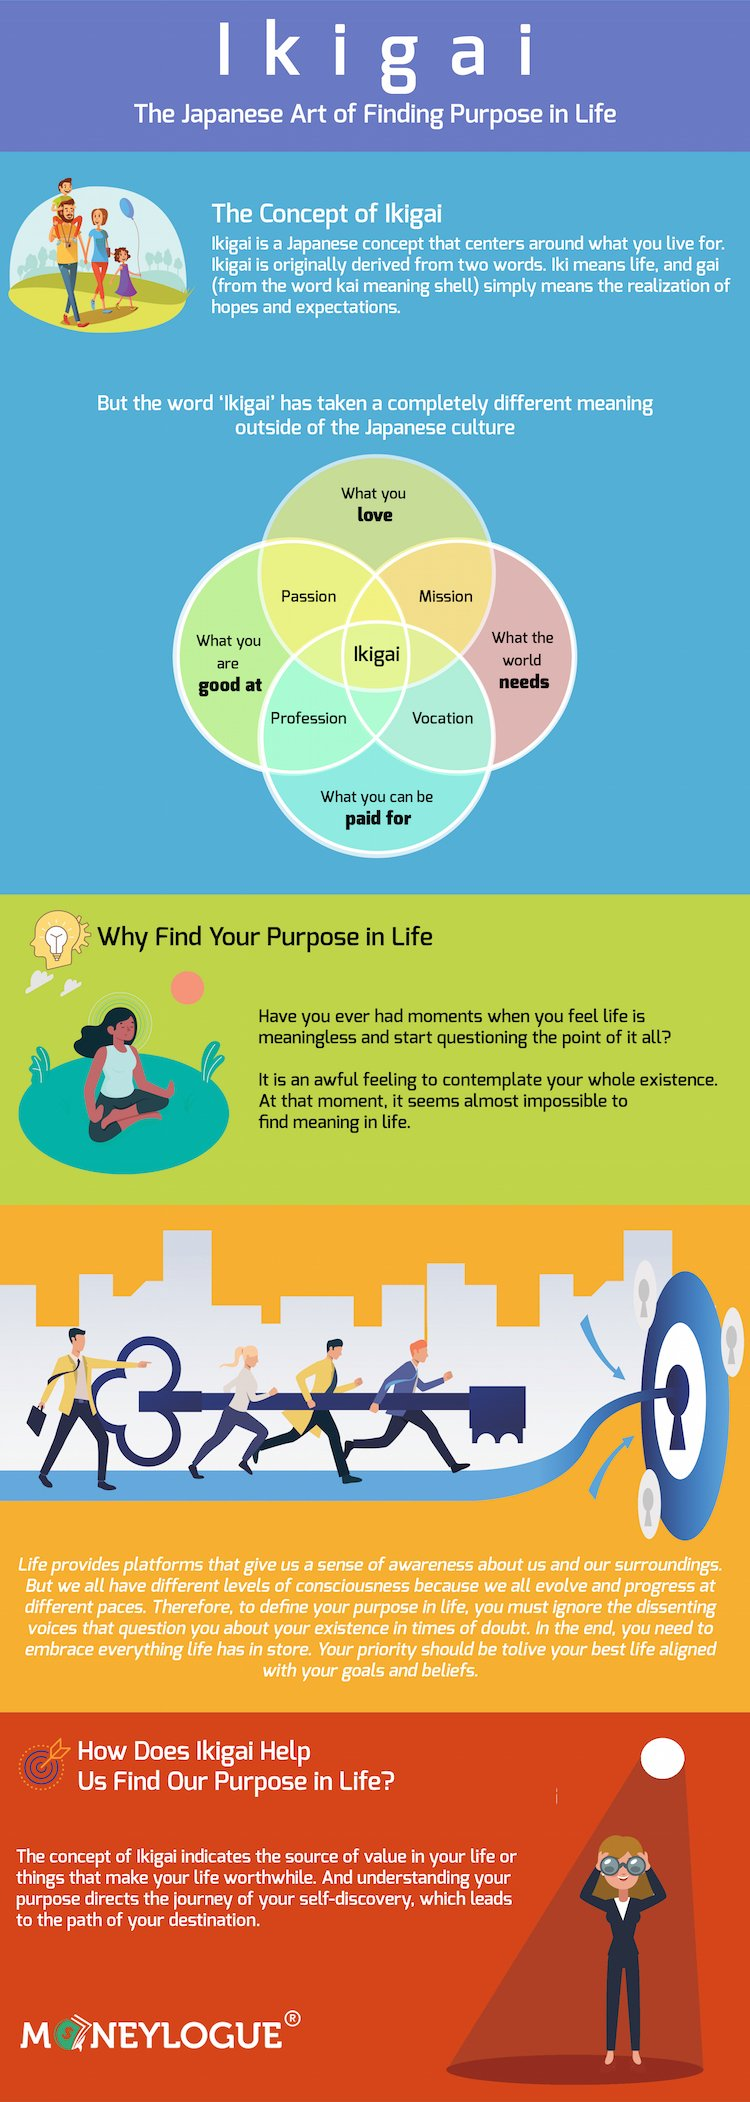 Ikigai The Japanese Purpose in Life